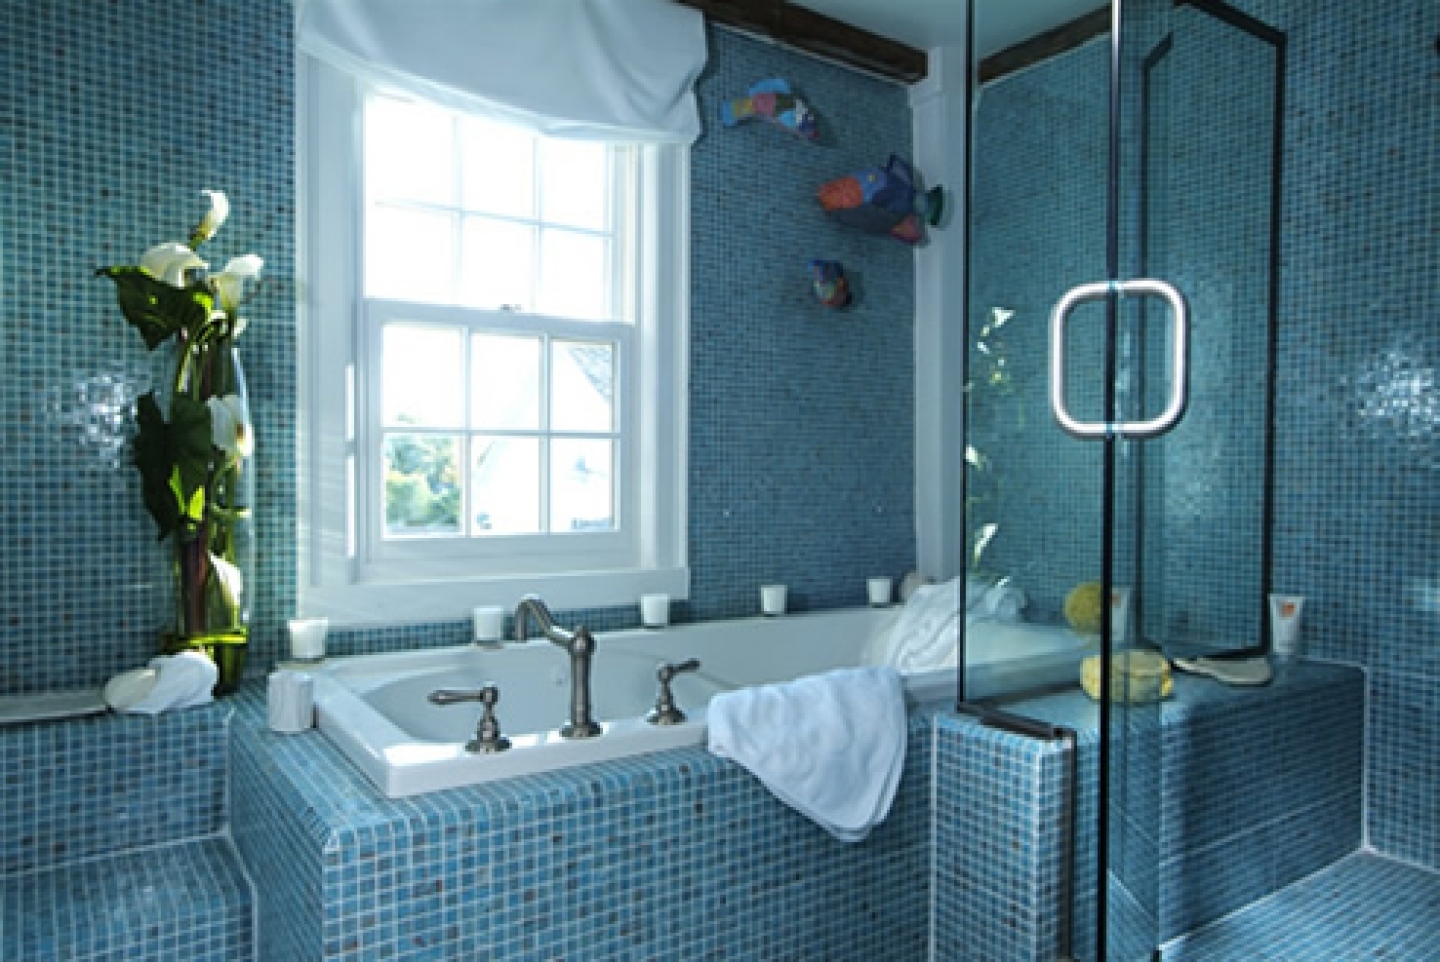 40 vintage blue bathroom tiles ideas and pictures for Bathroom tile designs ideas